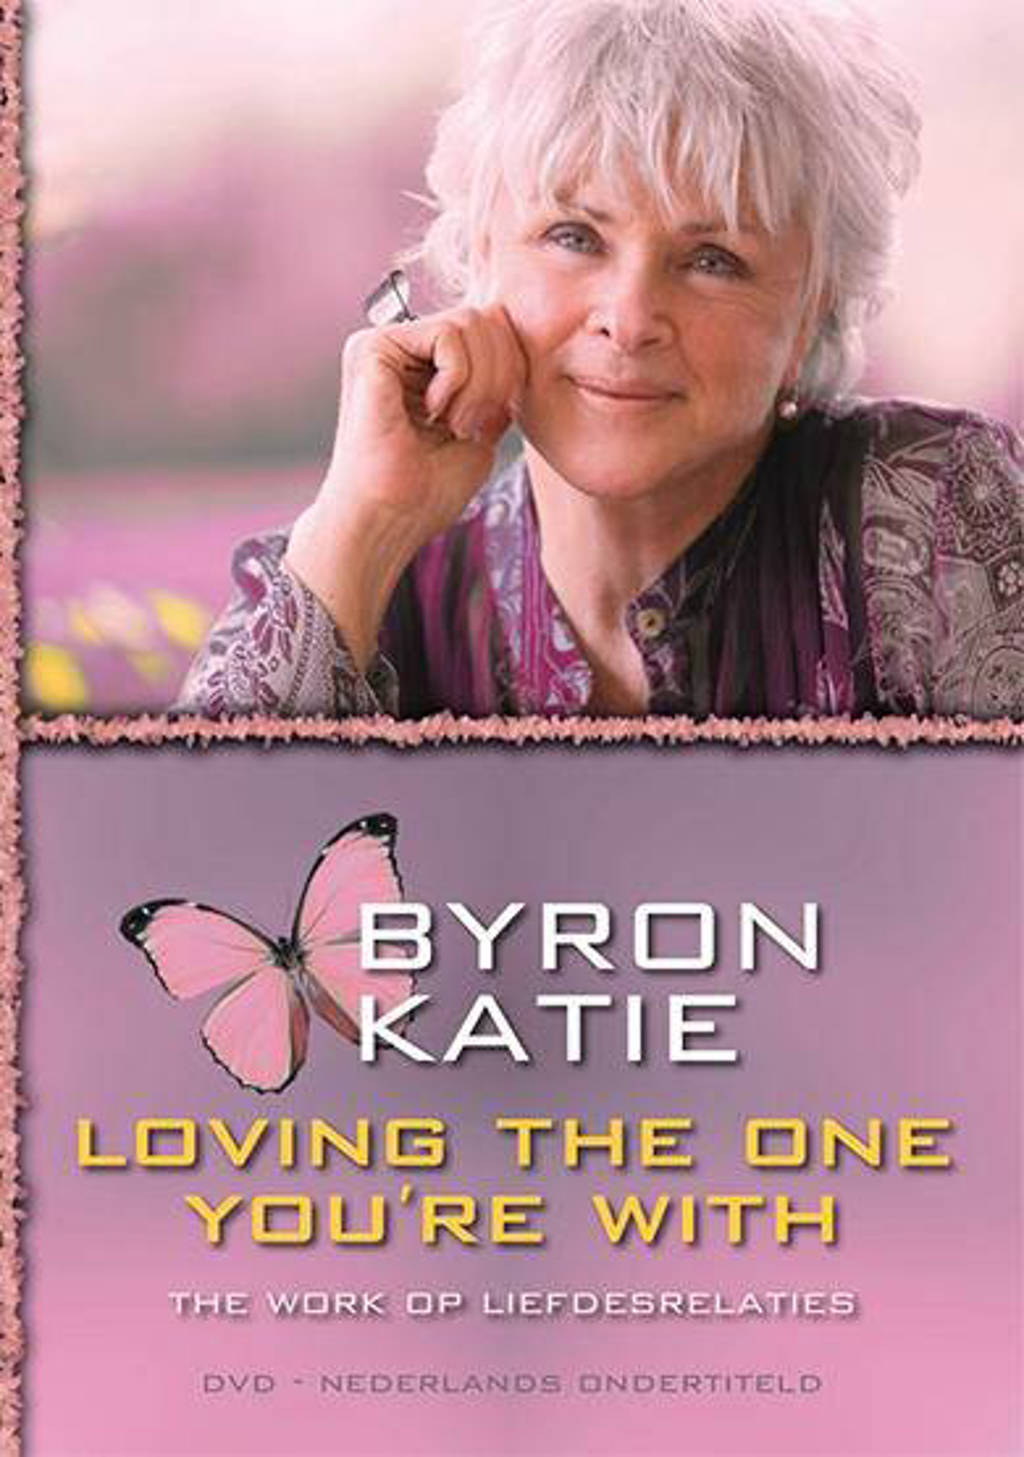 Byron Katie - Loving the one you're with (DVD)